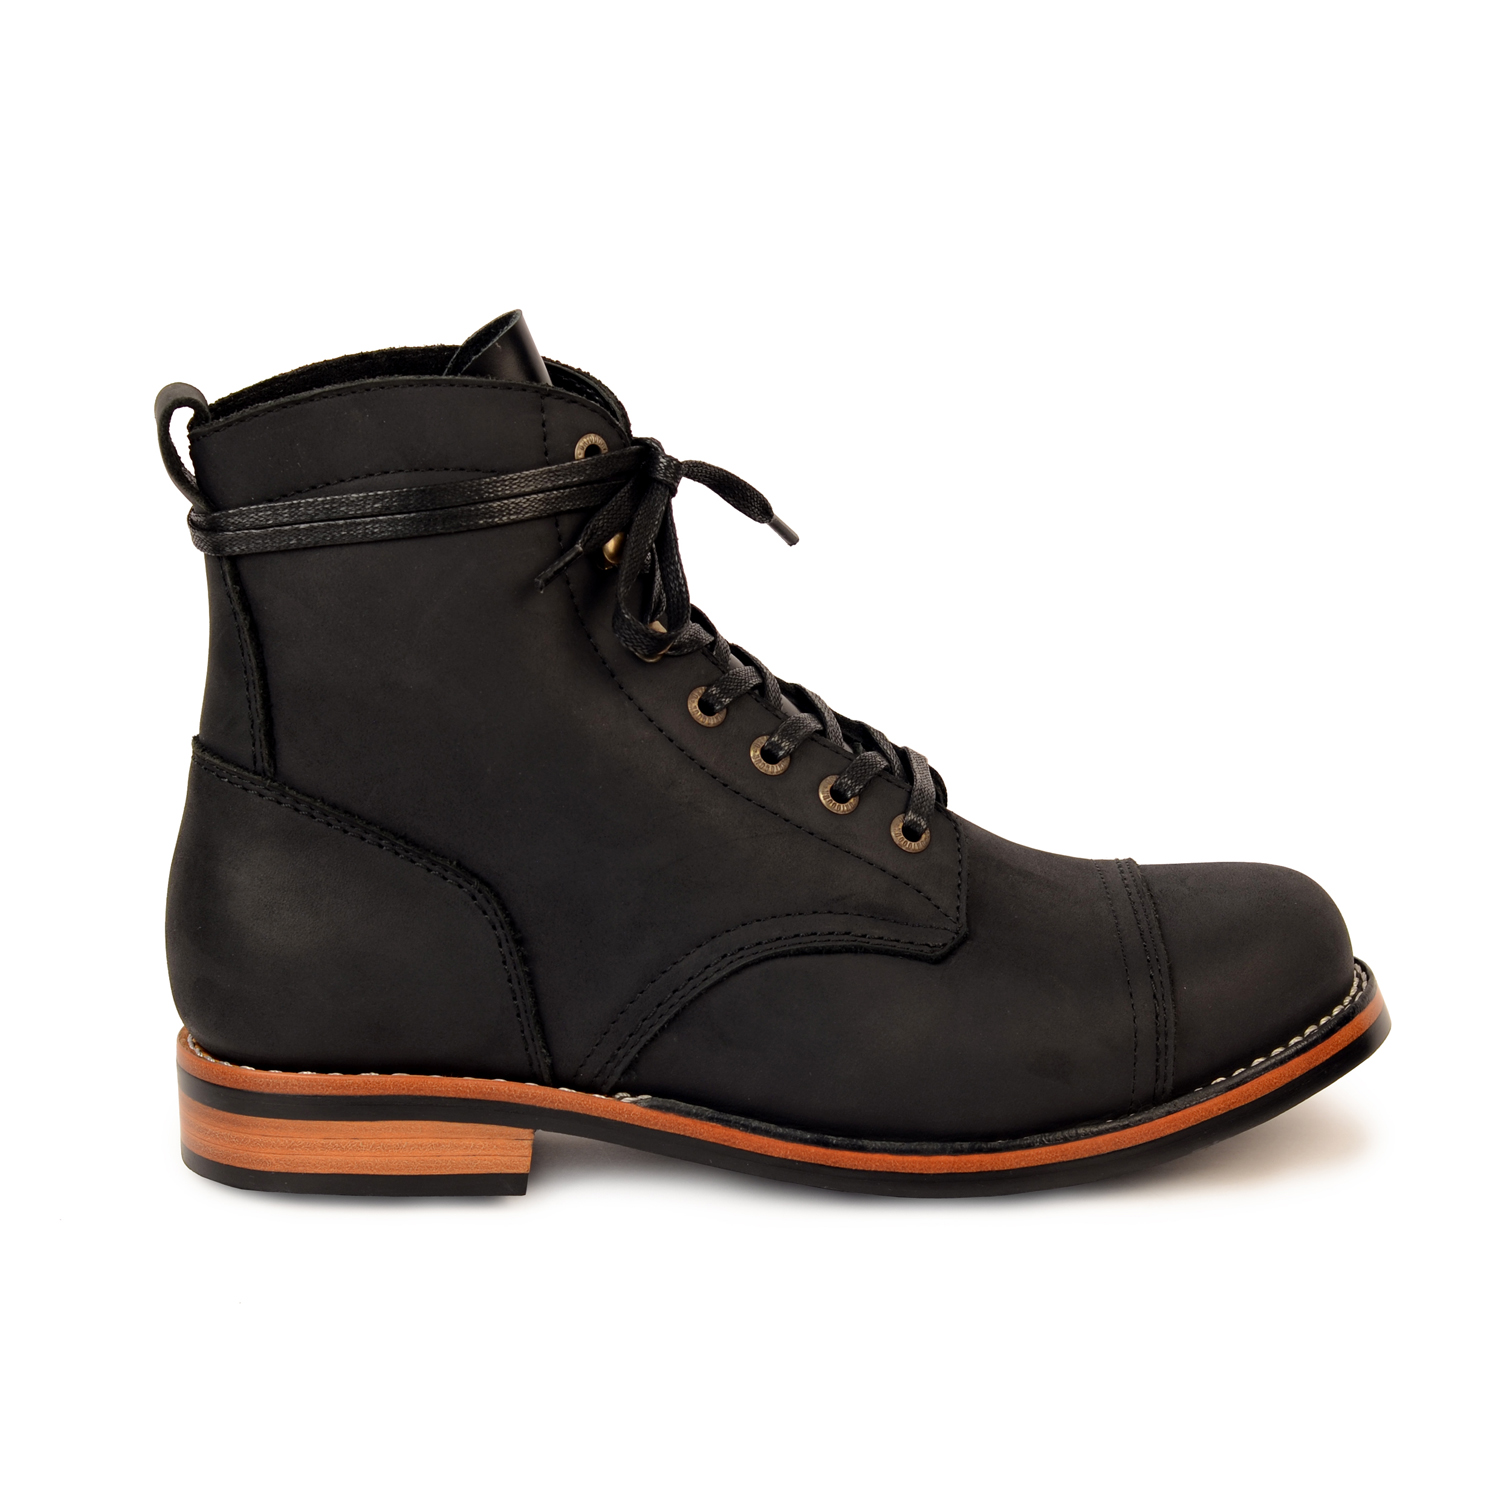 RAVEN - Veldtschoen Leather Boots